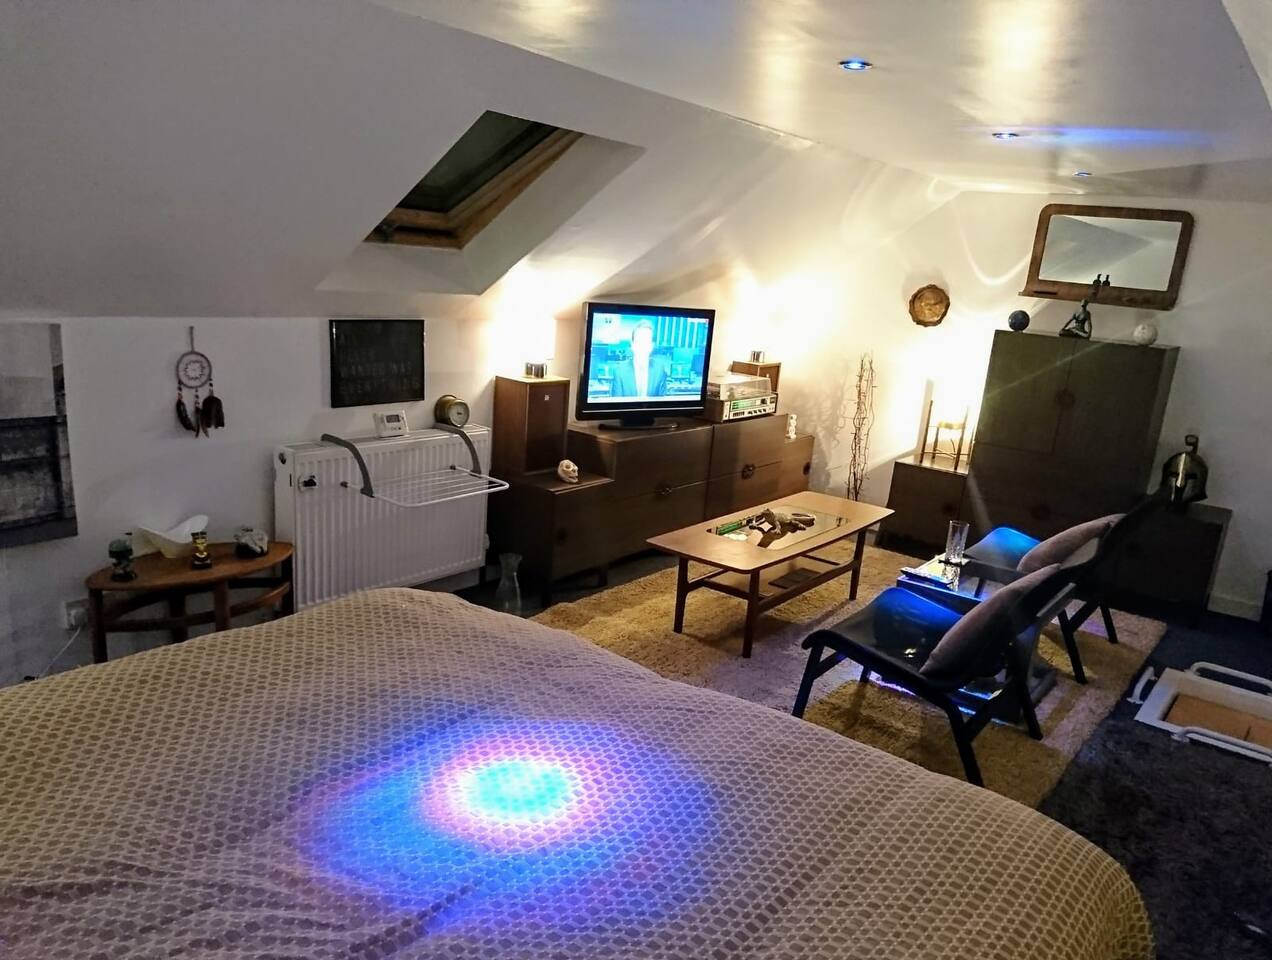 PLEASE NOTE THIS ROOM IS IN THE ATTIC AND ACCESS IS VIA A LADDER - photos  Fantastic open plan loft space with twin or double bed, with separate seating area with smart tv , sound bar, tea and coffee making facilities.